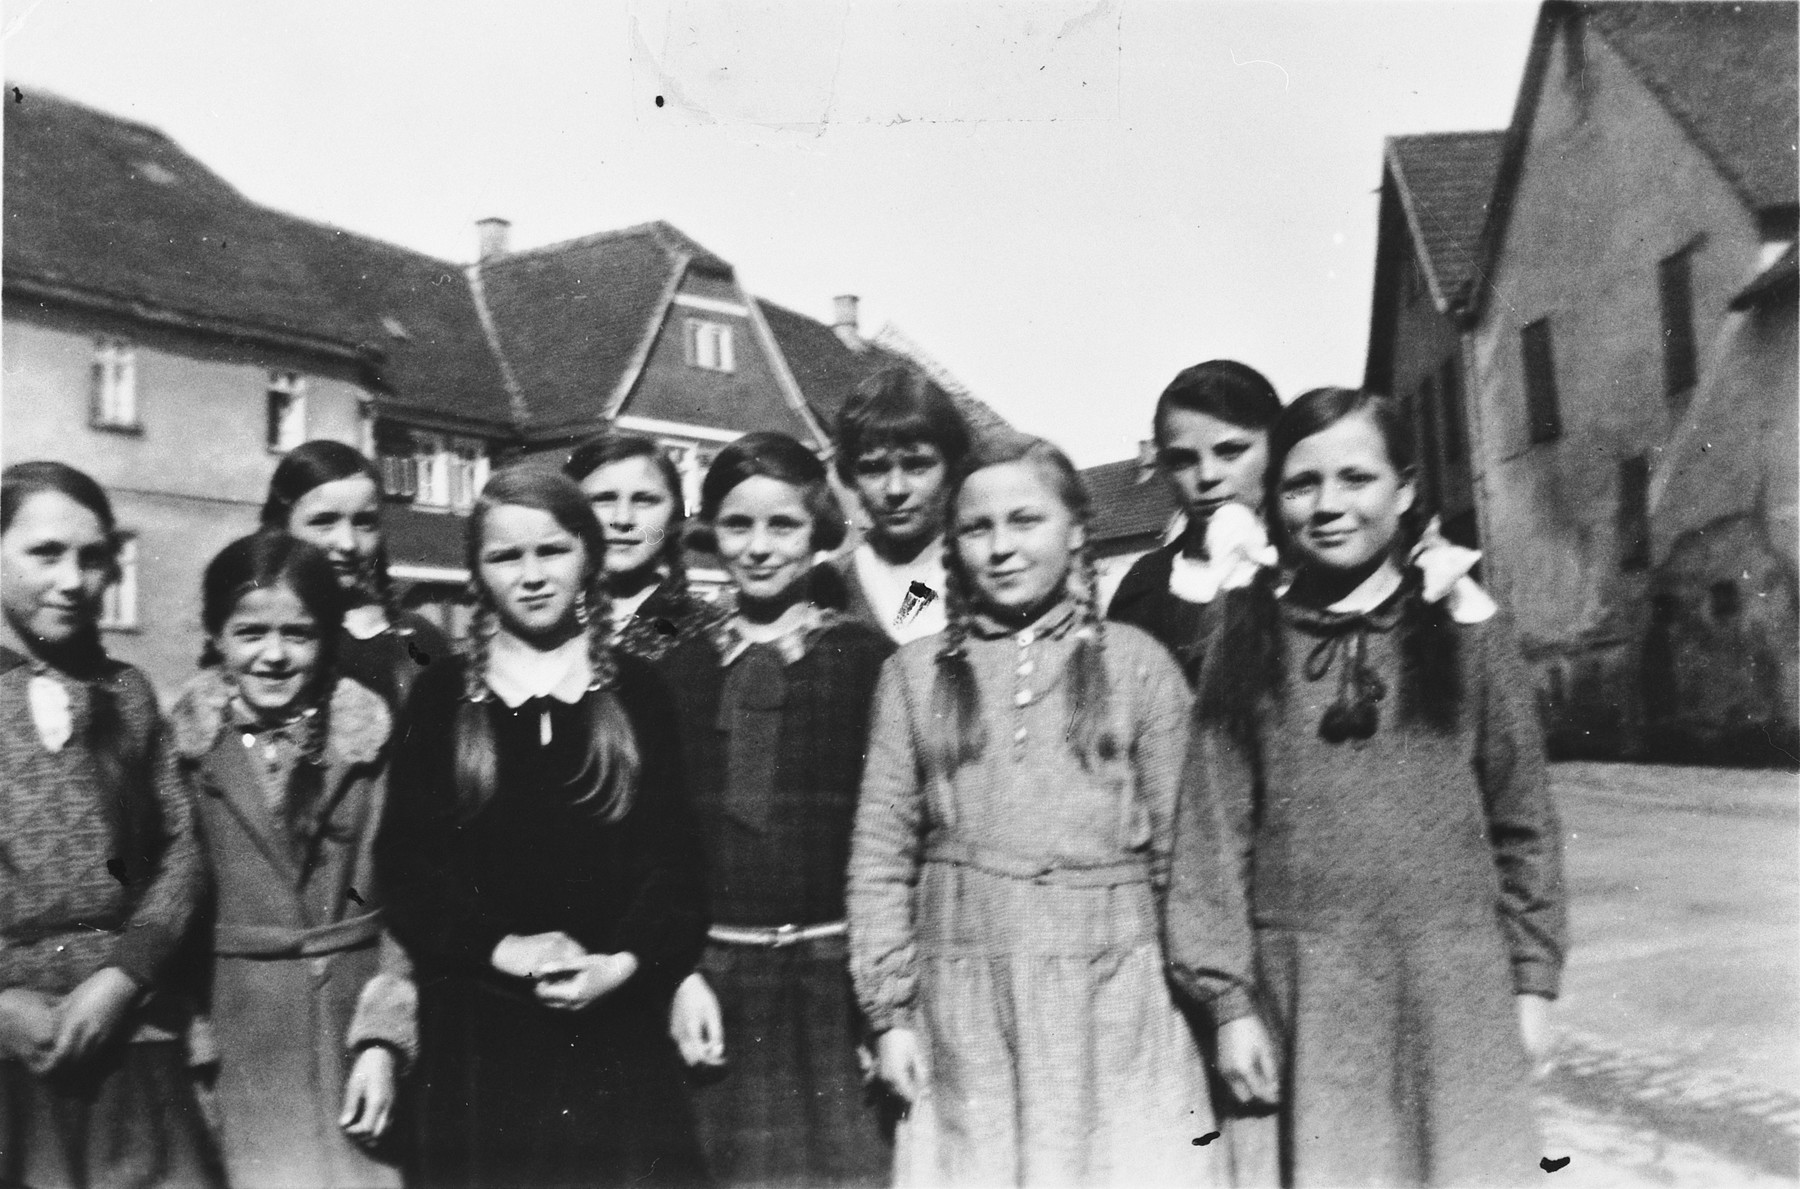 School girls, both Jewish and German, pose in a row on a street in Holzheim, Germany.  Pictured in the center is Ruth Herz.